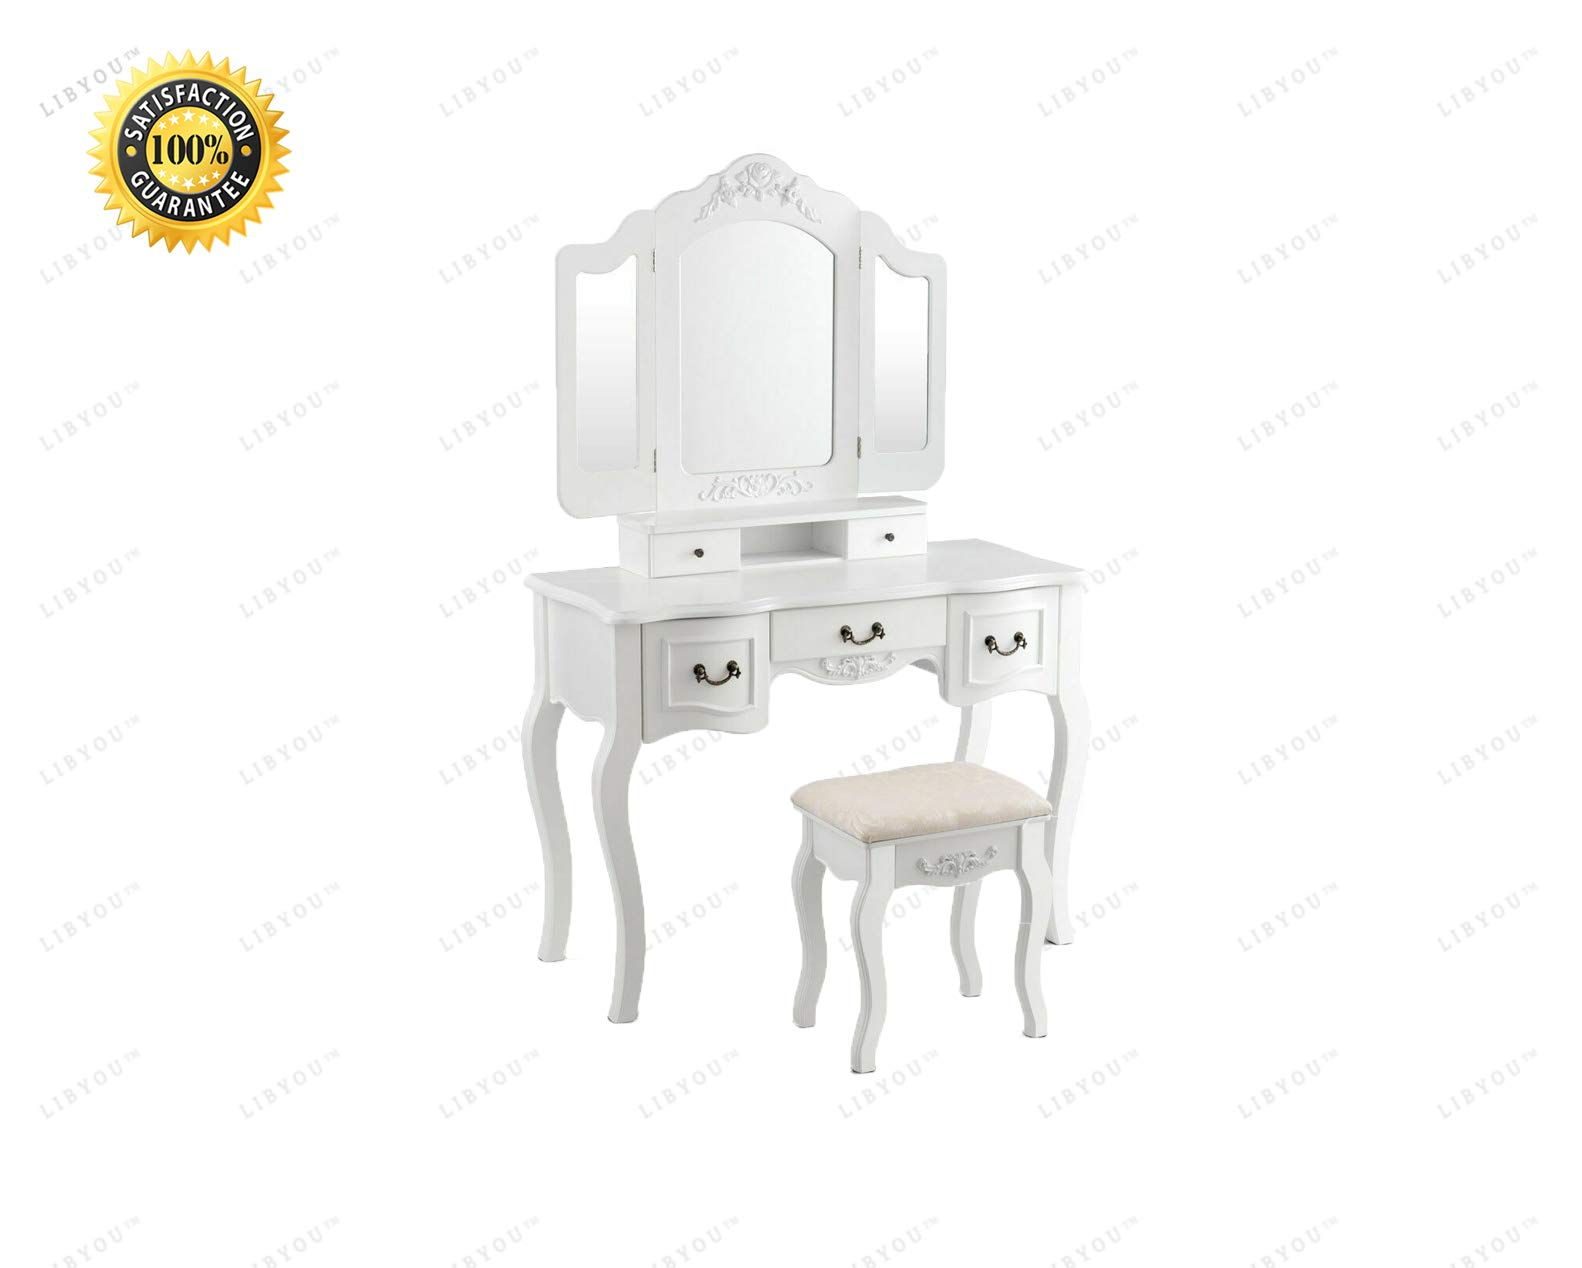 LIBYOU__Tri Folding Vanity Table,Makeup Dressing Table Set,Mirror Vanity Table Set, Makeup Table Stool Set,Dressing up Table, Tri Folding Mirror Makeup Table Set,Makeup Table Stool Set